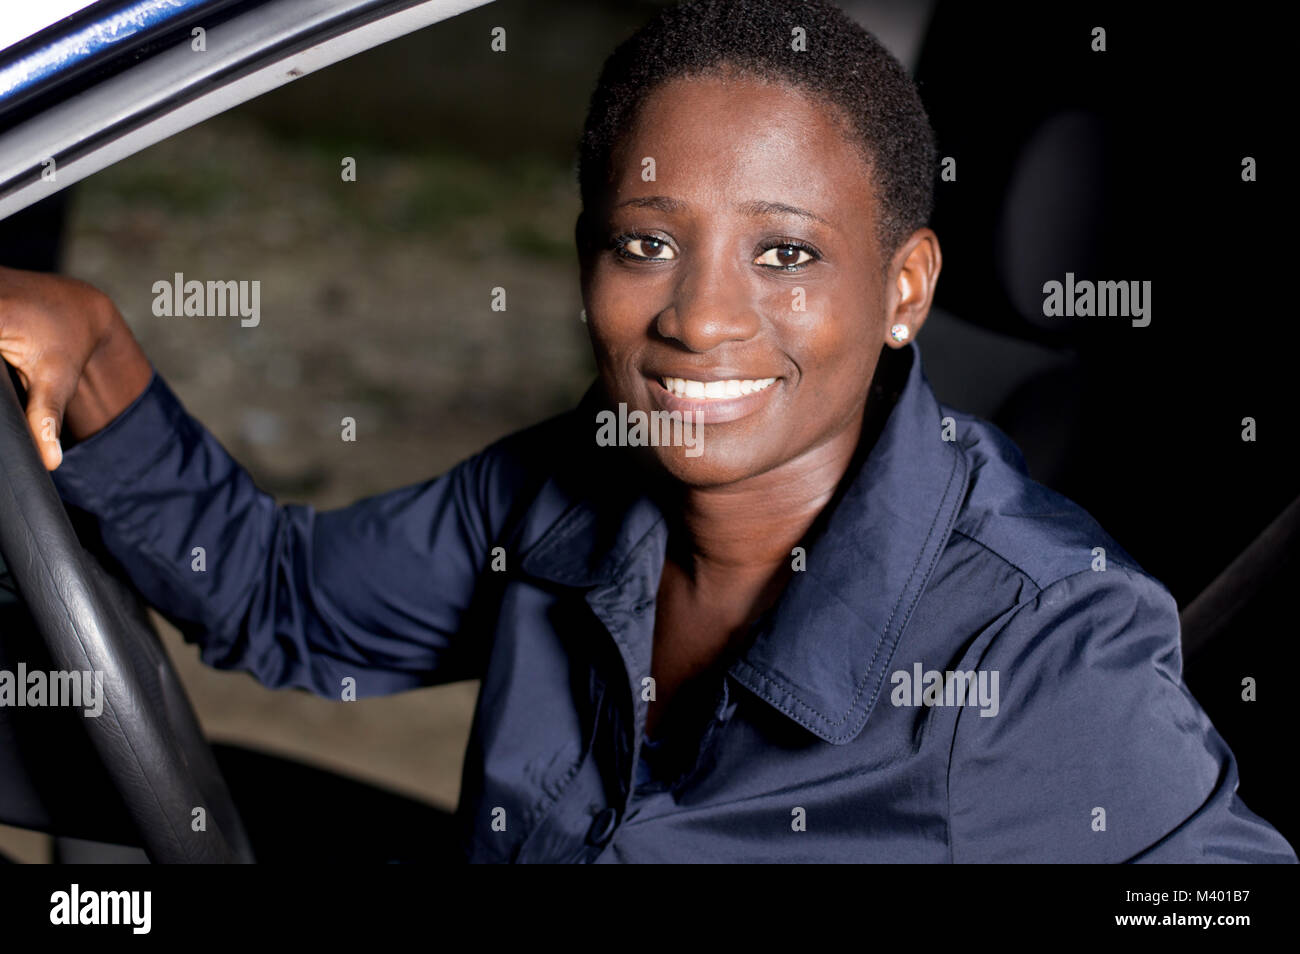 Young woman sitting in a car, hands on the steering wheel smiling at the camera. - Stock Image